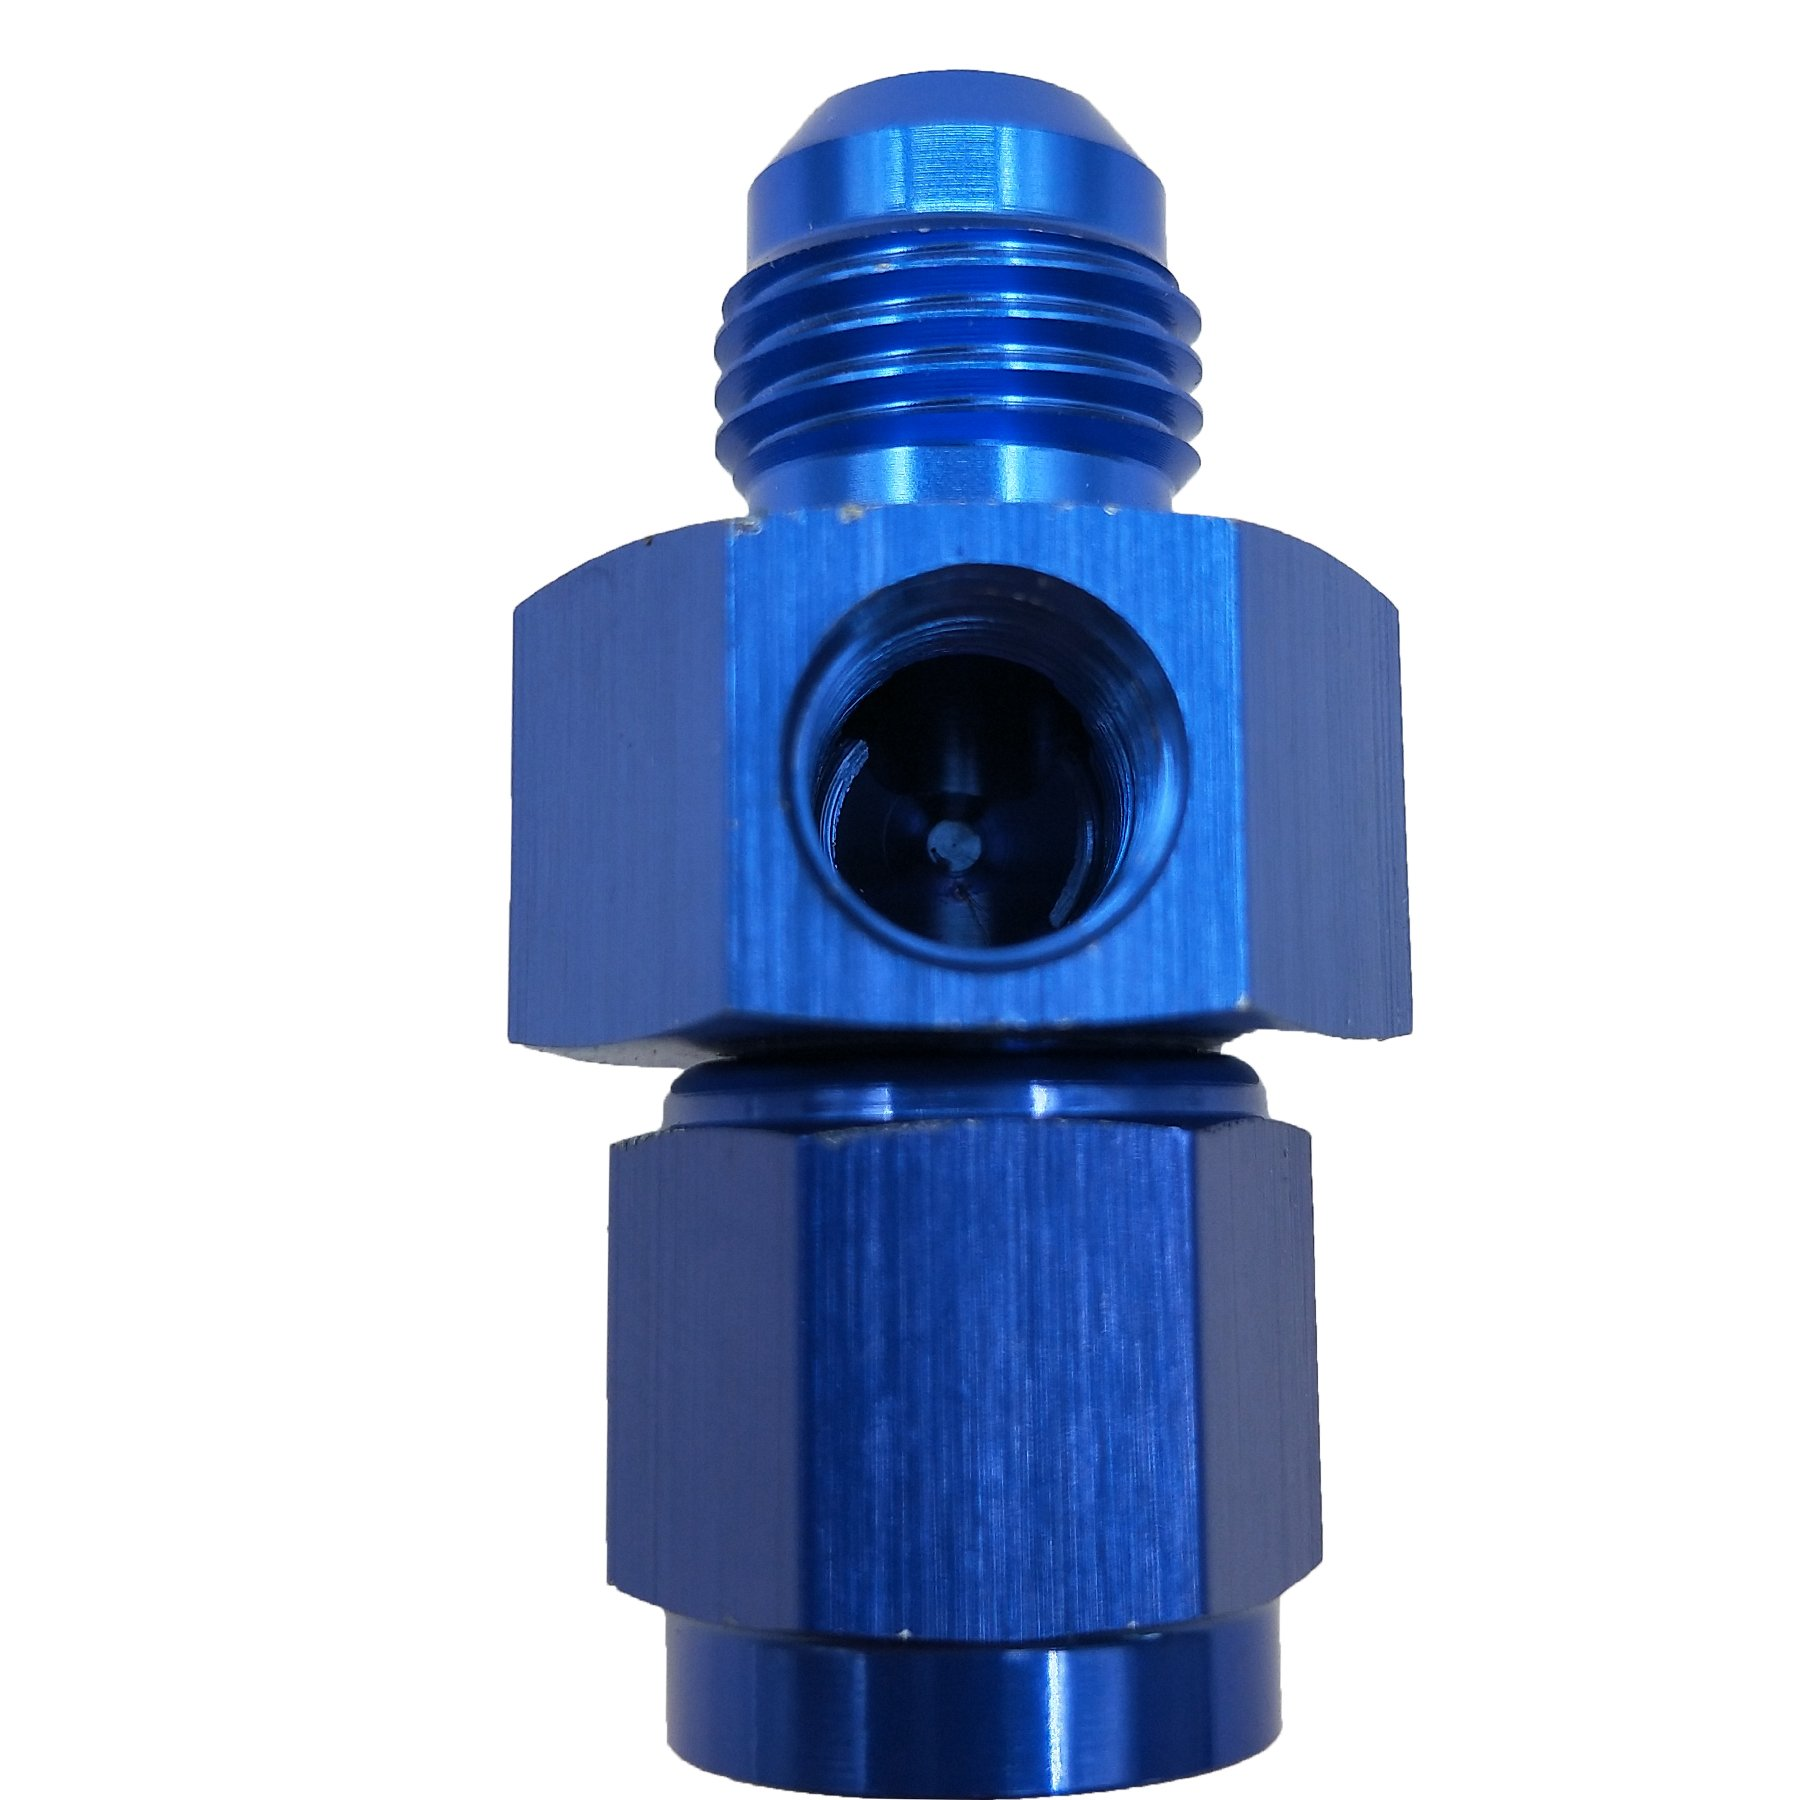 Dracary Nirtrous Adapter With Two 1/8'' NPT Ports For Gauge Purge M-6 AN Male To -6 AN Female Blue (6AN)